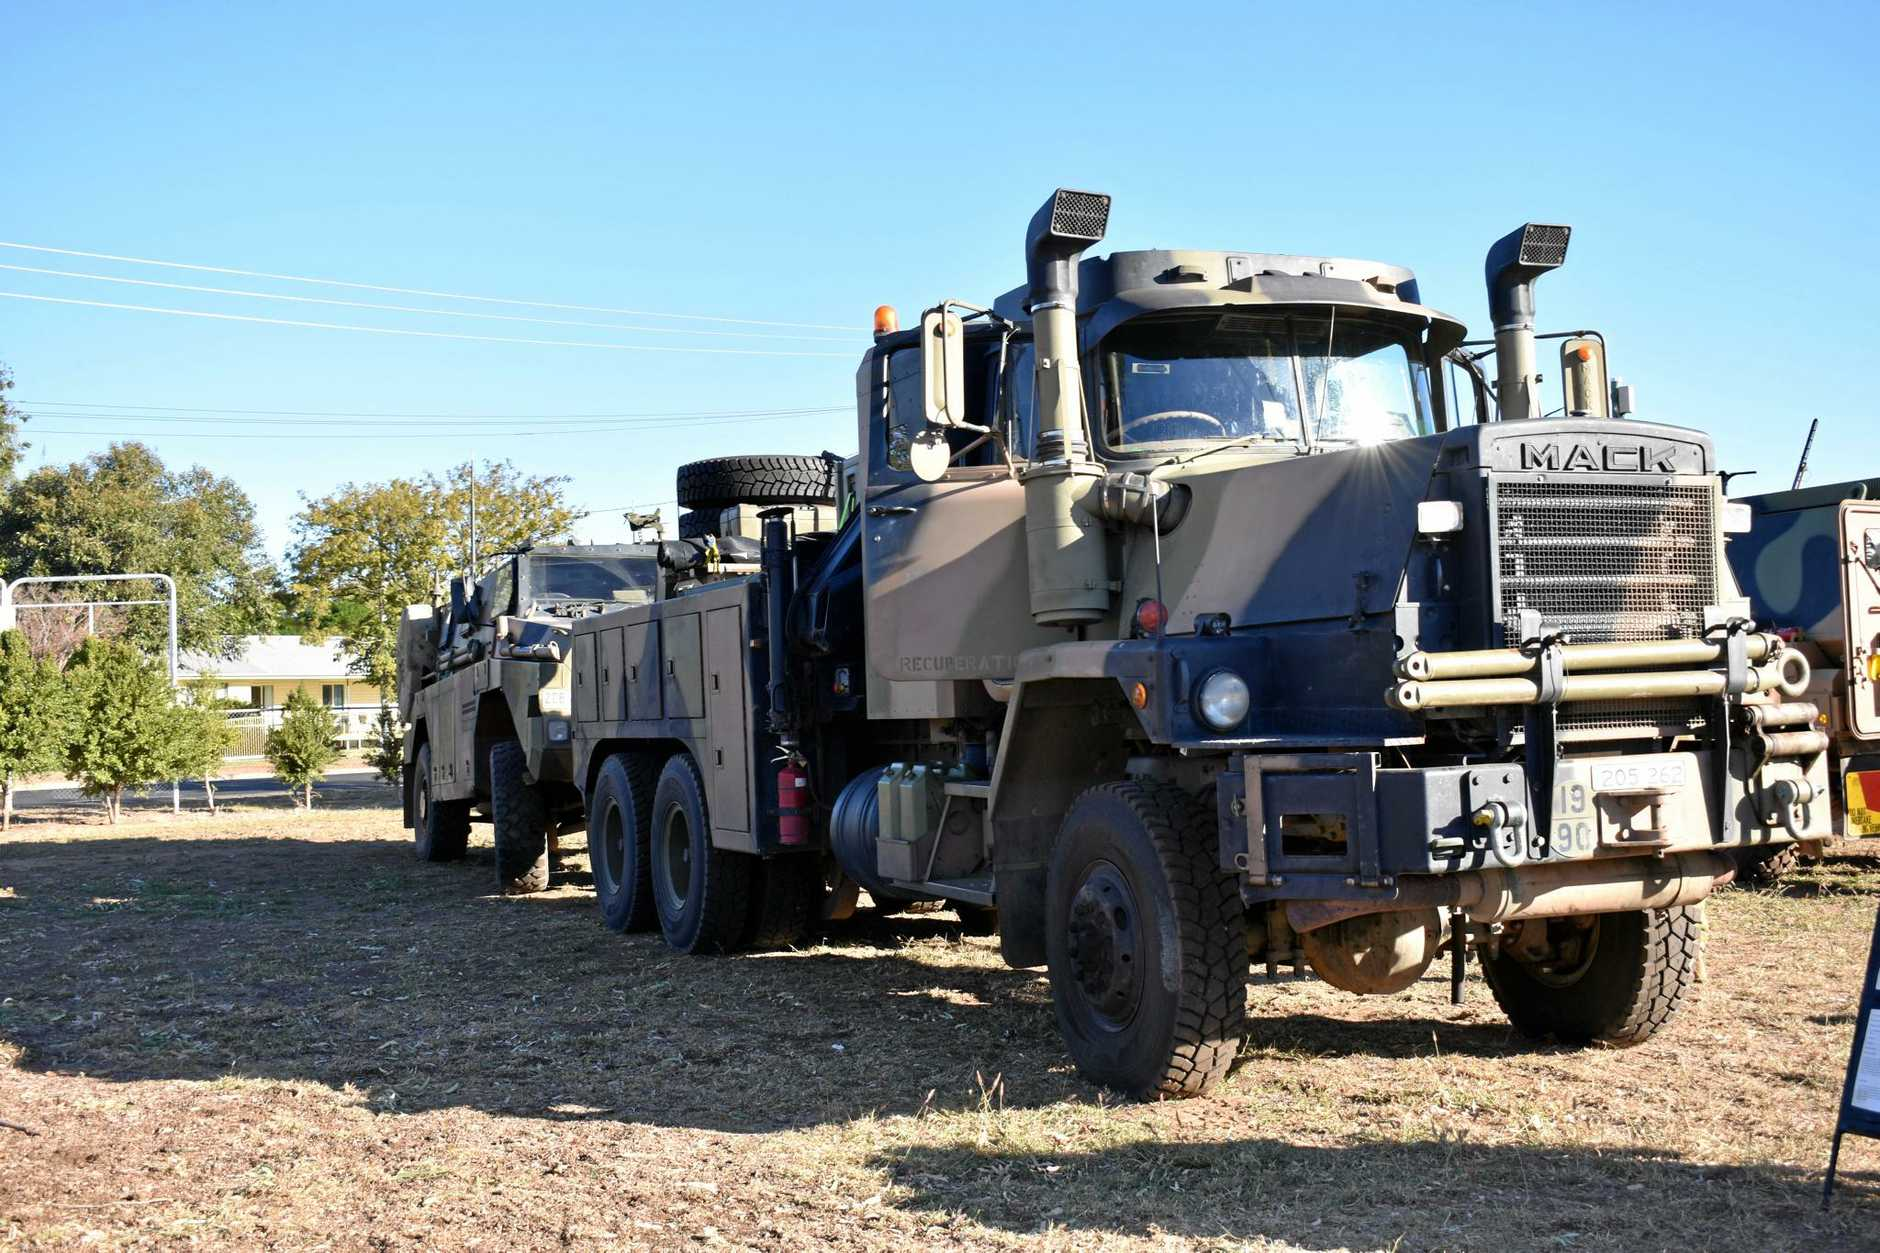 Army trucks are still travelling along the highway.